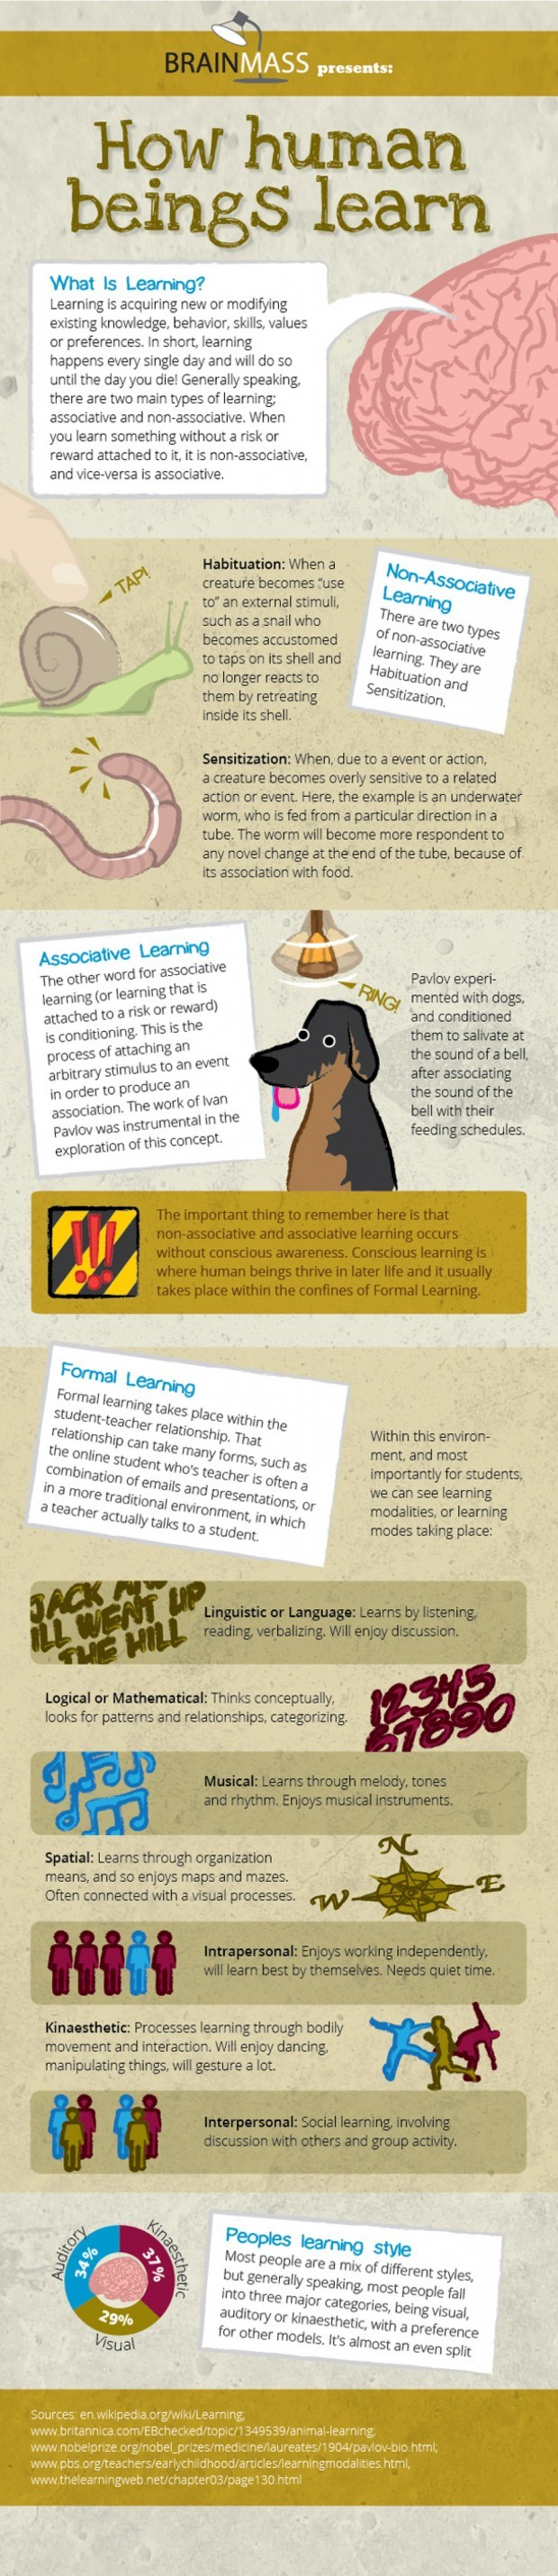 How-Human-Beings-Learn-Infographic